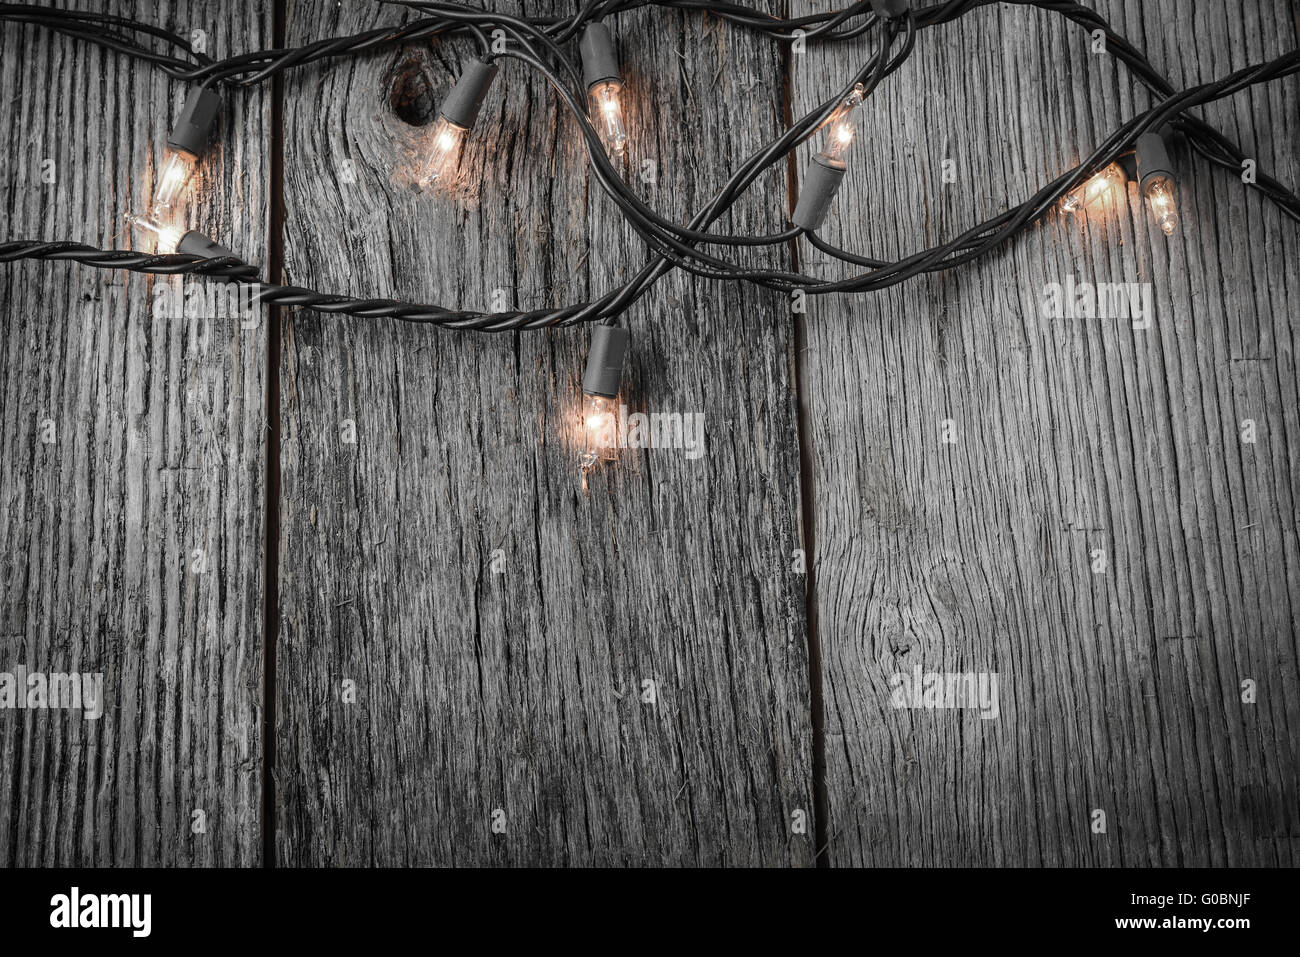 White Christmas Tree Lights With Rustic Wood Background